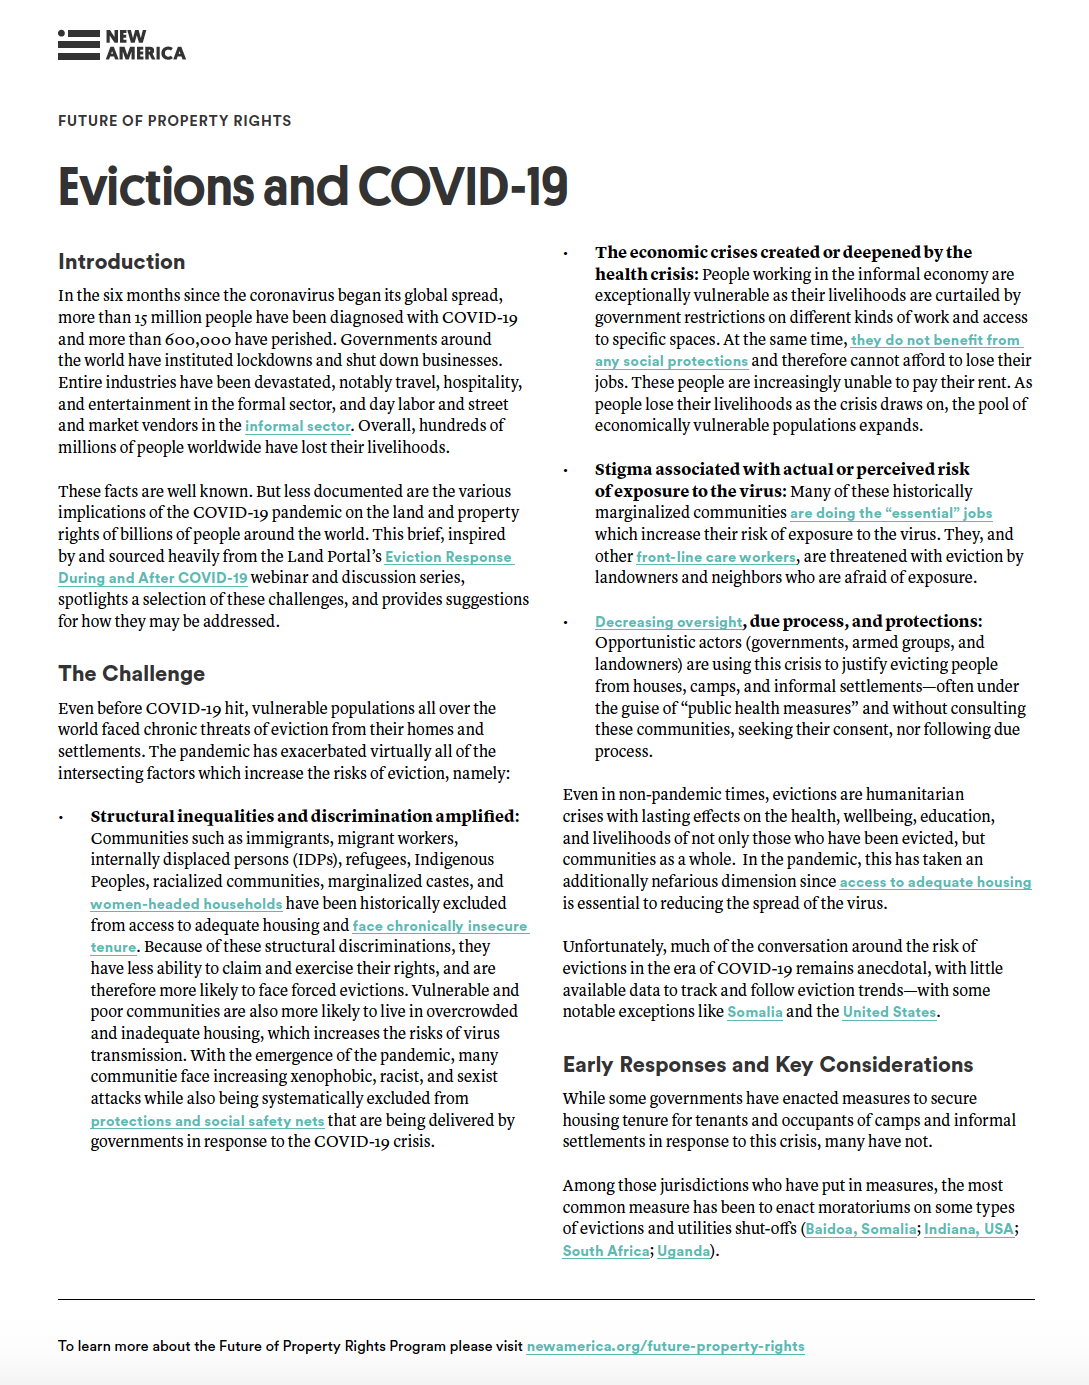 Evictions and COVID-19